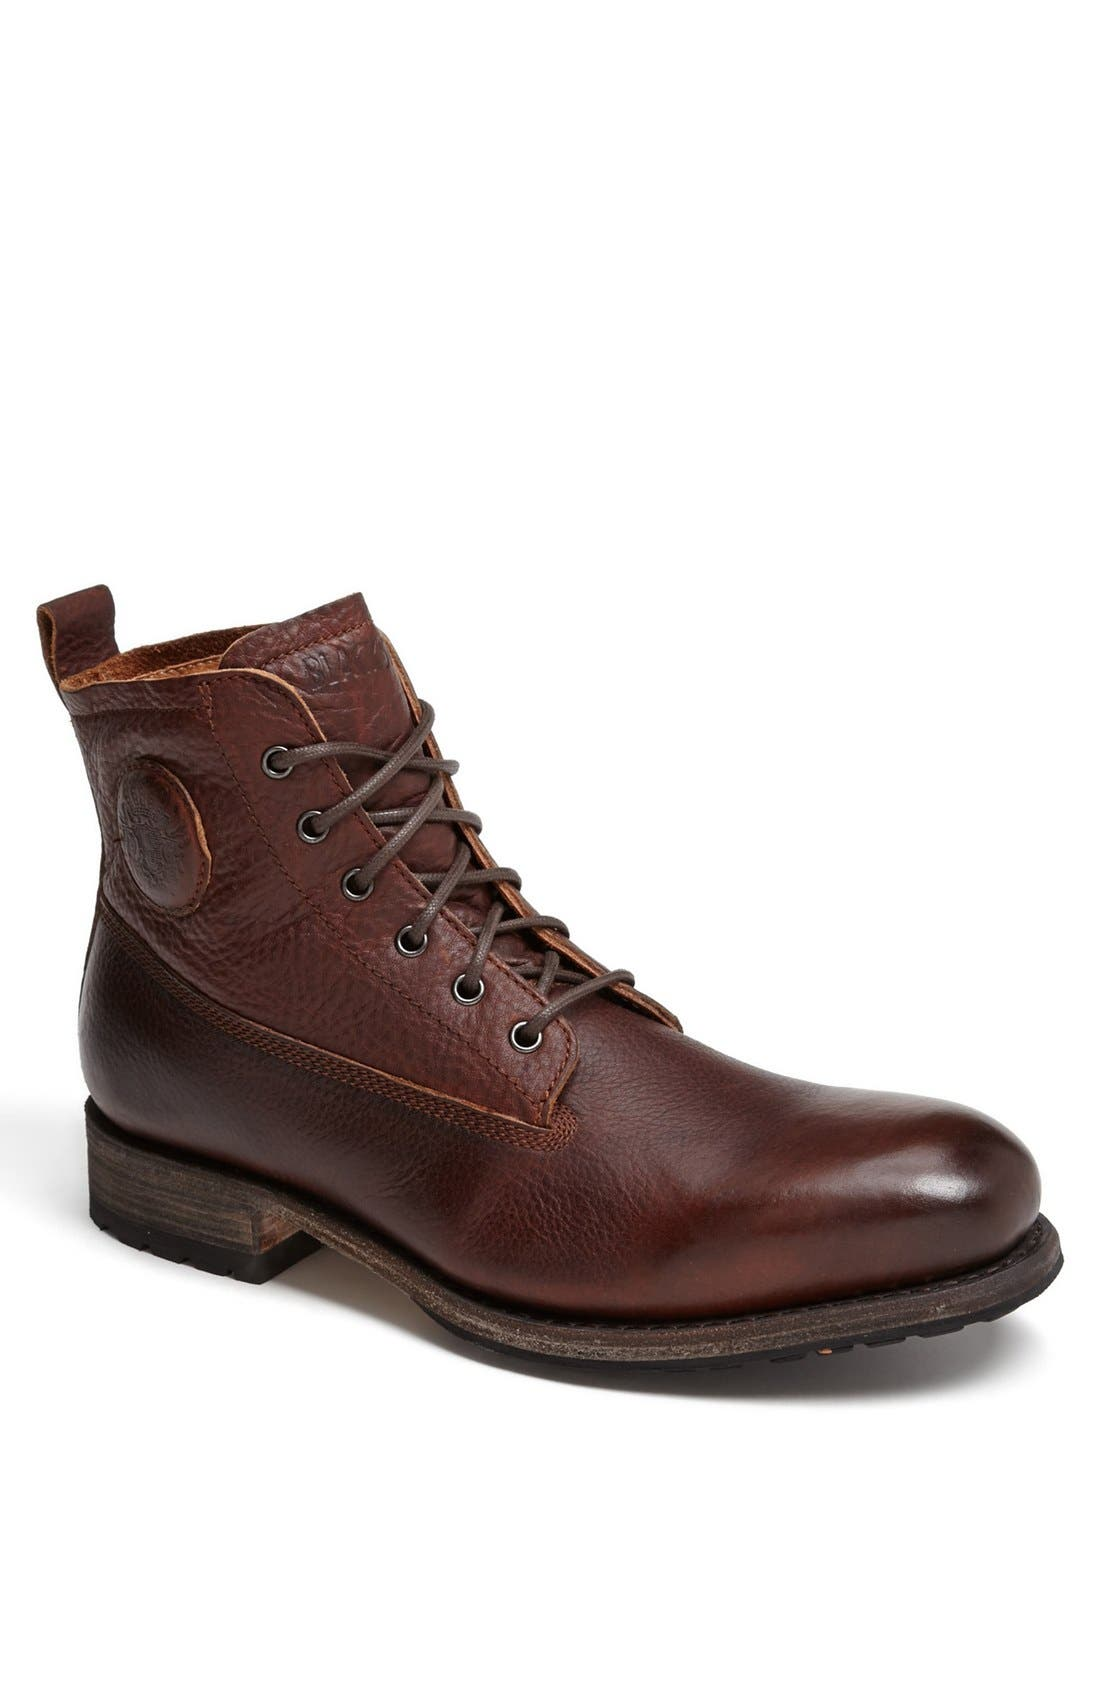 'GM 09' Plain Toe Boot,                         Main,                         color, Old Yellow